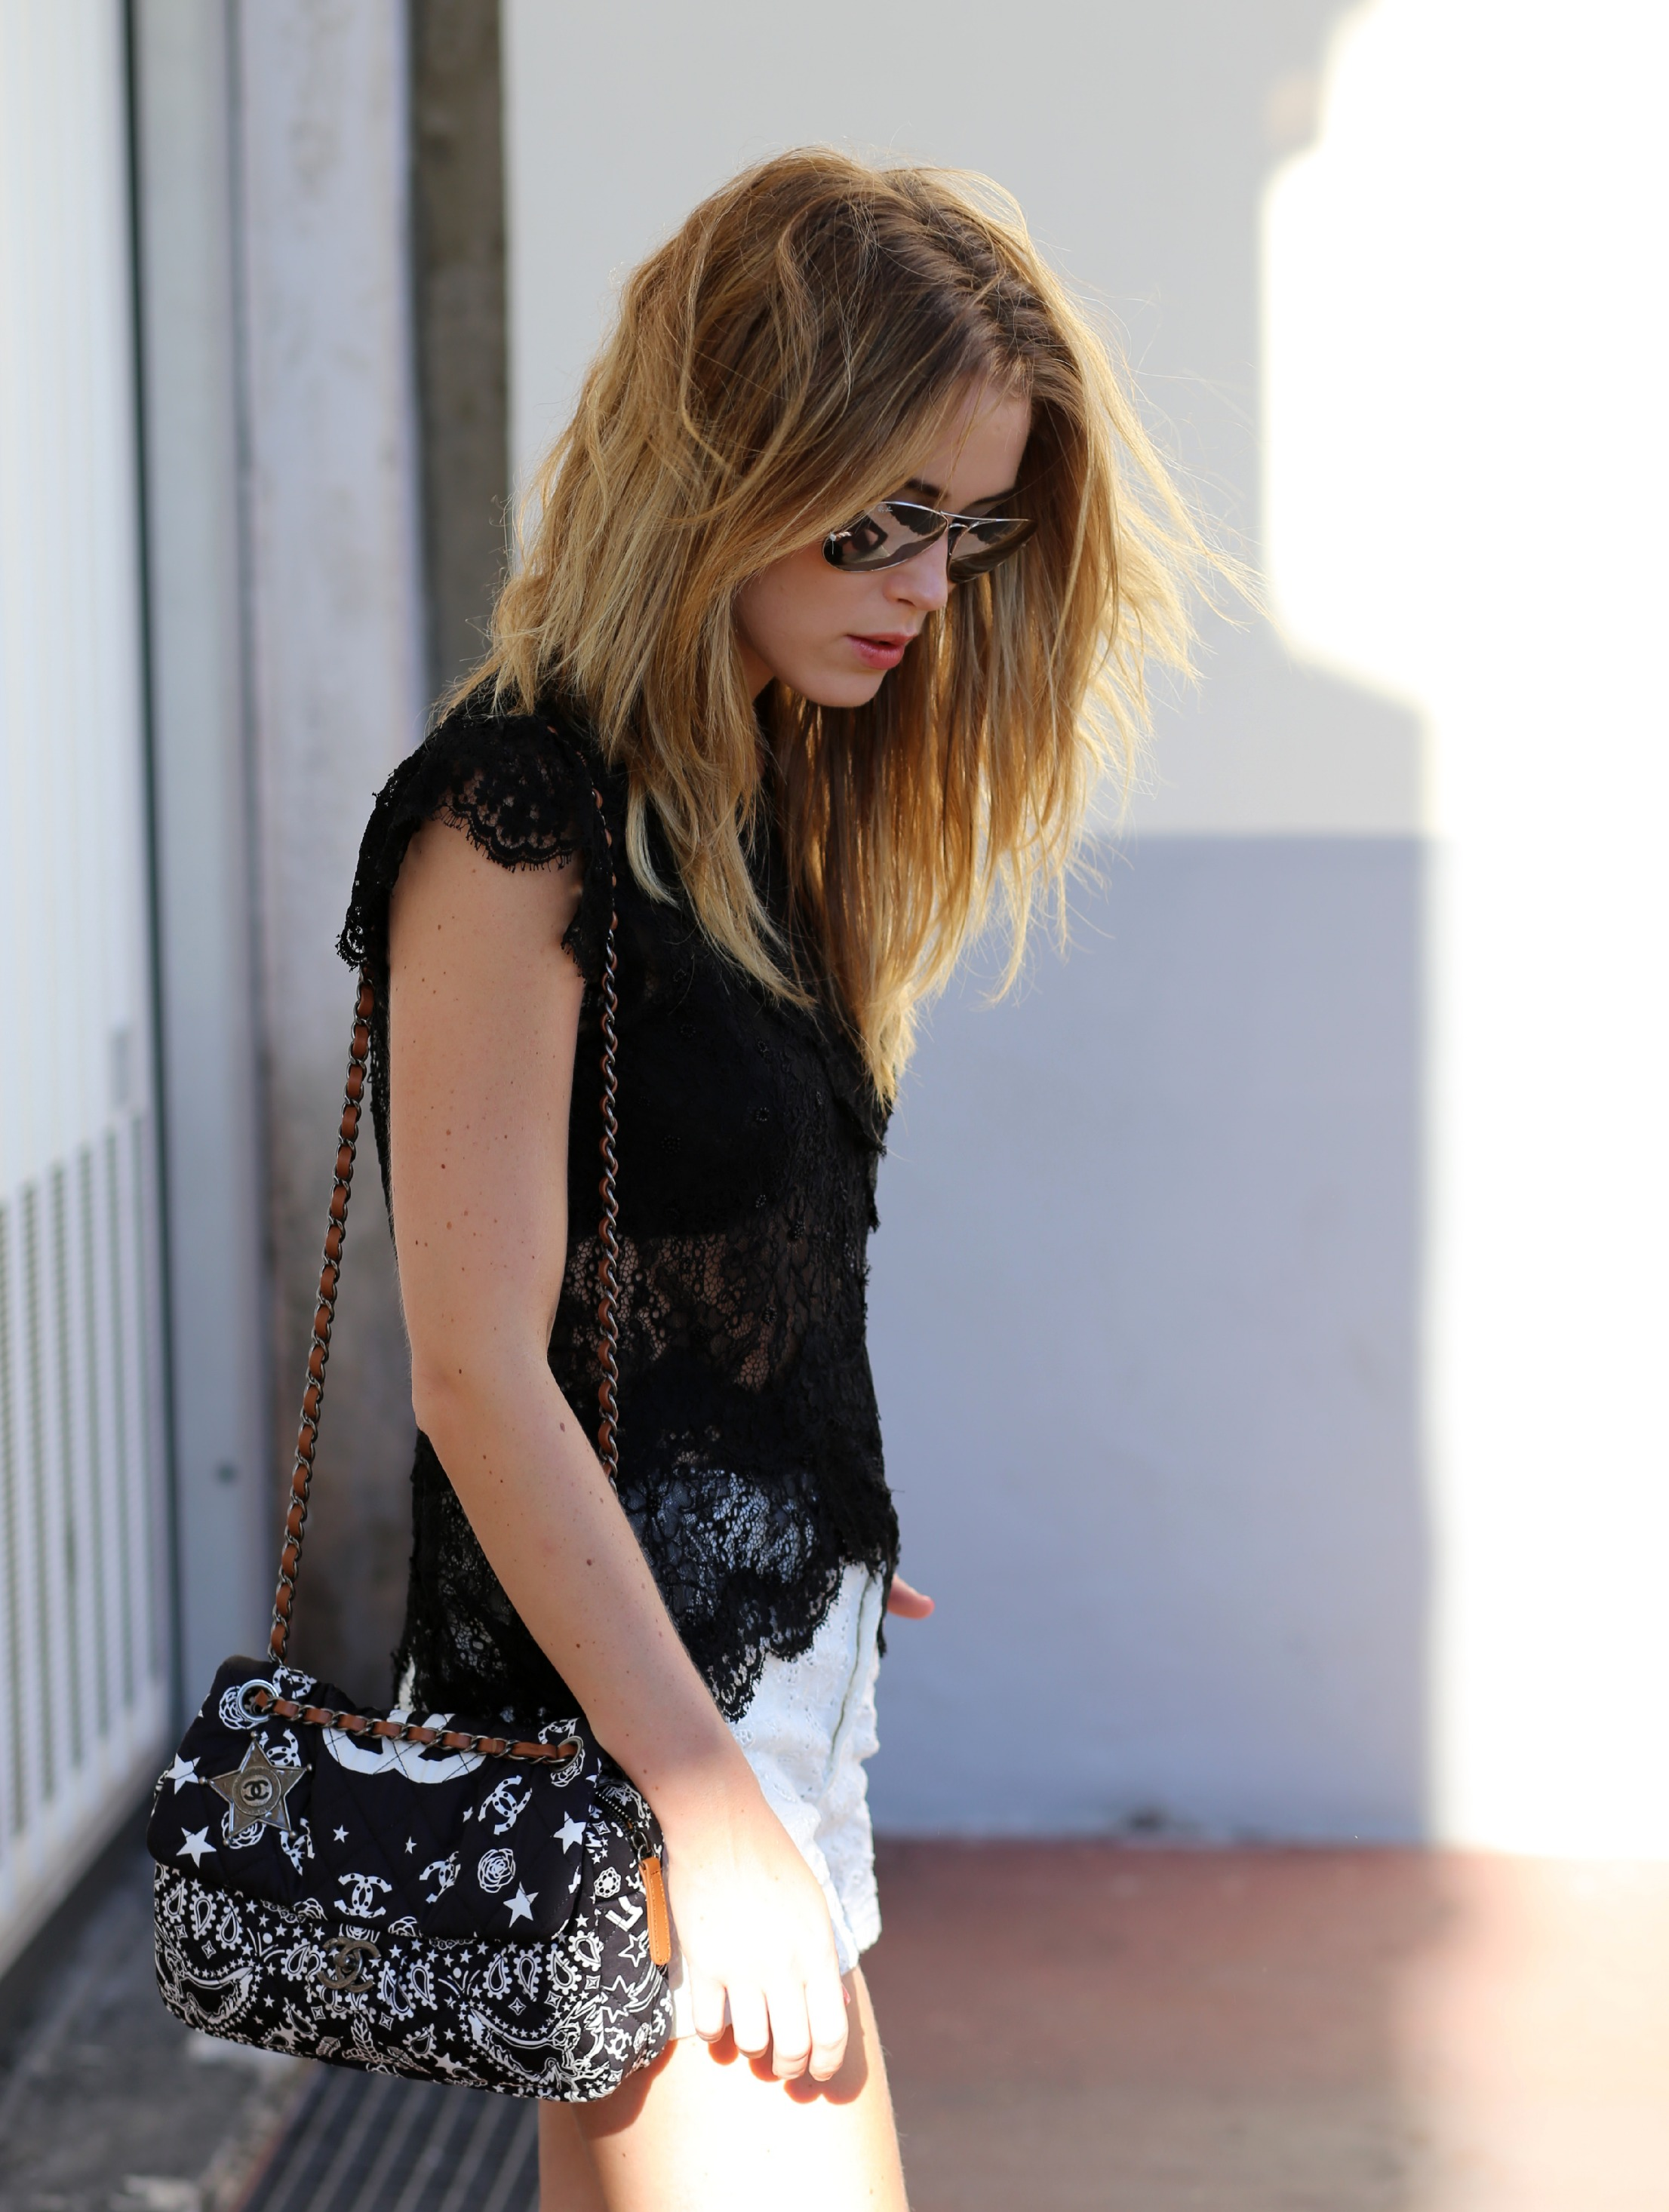 Annabel Rosendahl is wearing a lace top and shorts from Isabel Marant, bag from Chanel and the mirrored sunglasses are from Rayban